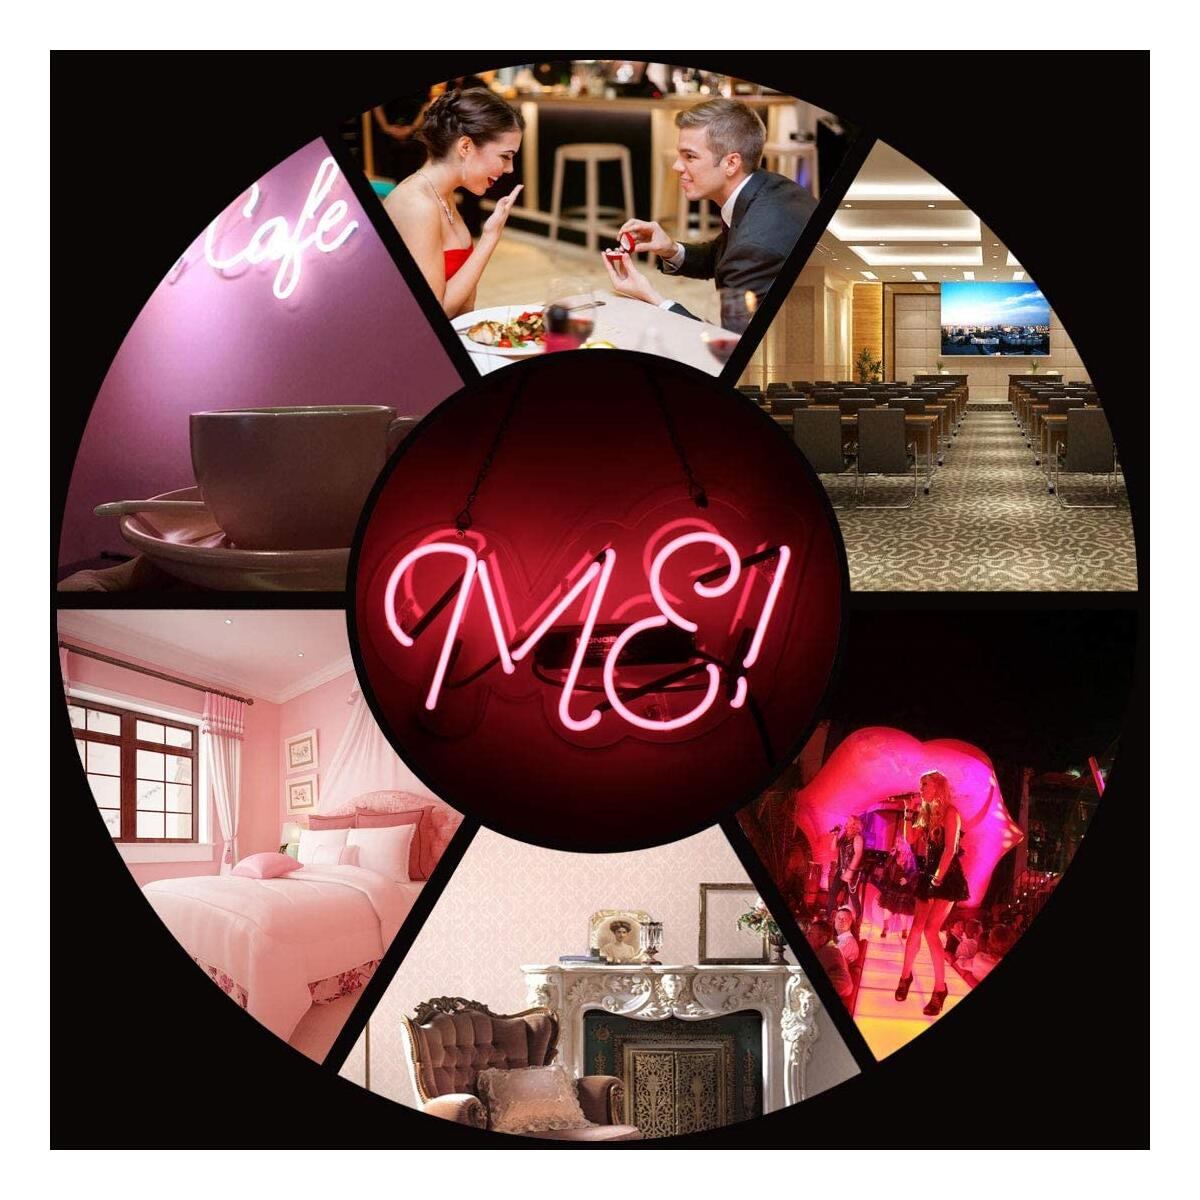 ME Neon Sign Handmade Glass 3D Visual Effect Pink Neon Light 14 x 6 Inch Plug-in Novelty Night Light Hanging Decorative Sign for Girls Bedroom Dormitory Home Club Wall Office Ball Party Love Gift